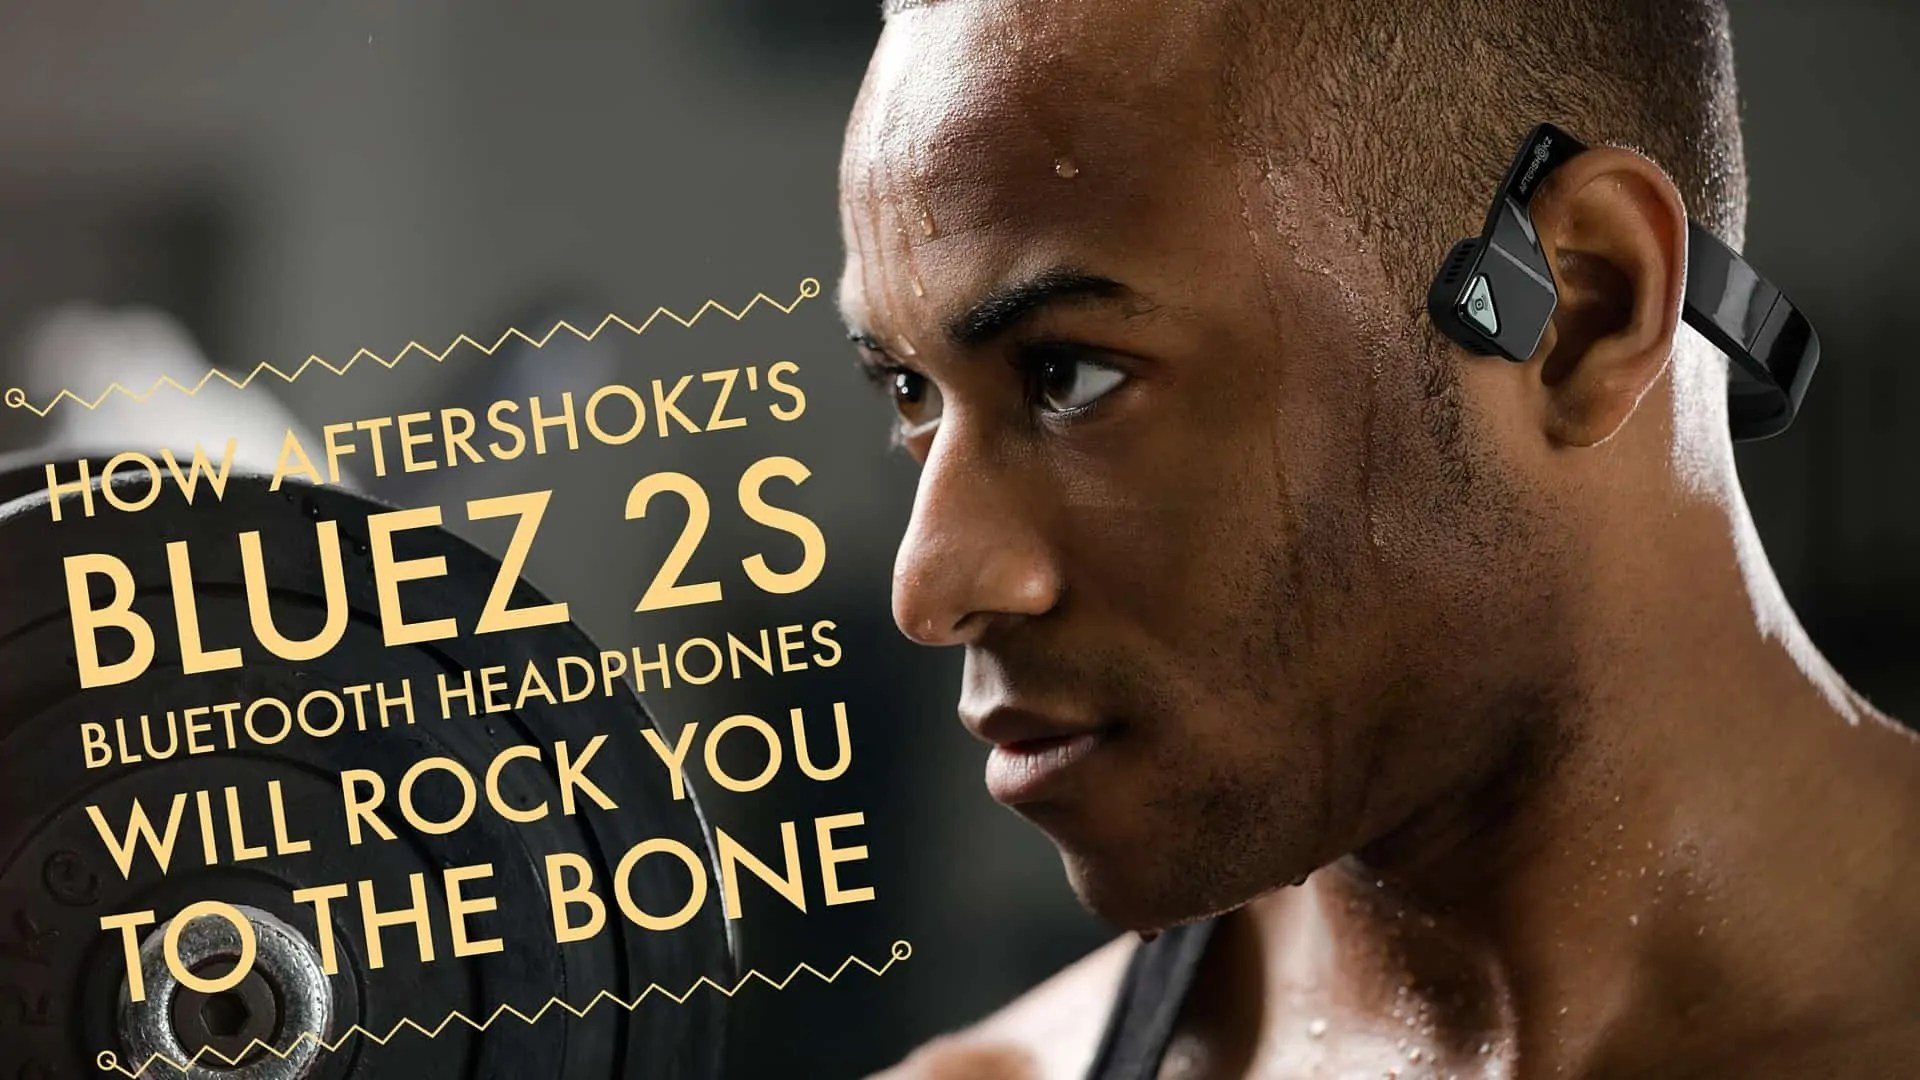 6f0ce9a6327 How AfterShokz's Bluez 2S Headphones Will Rock You to the BONE.